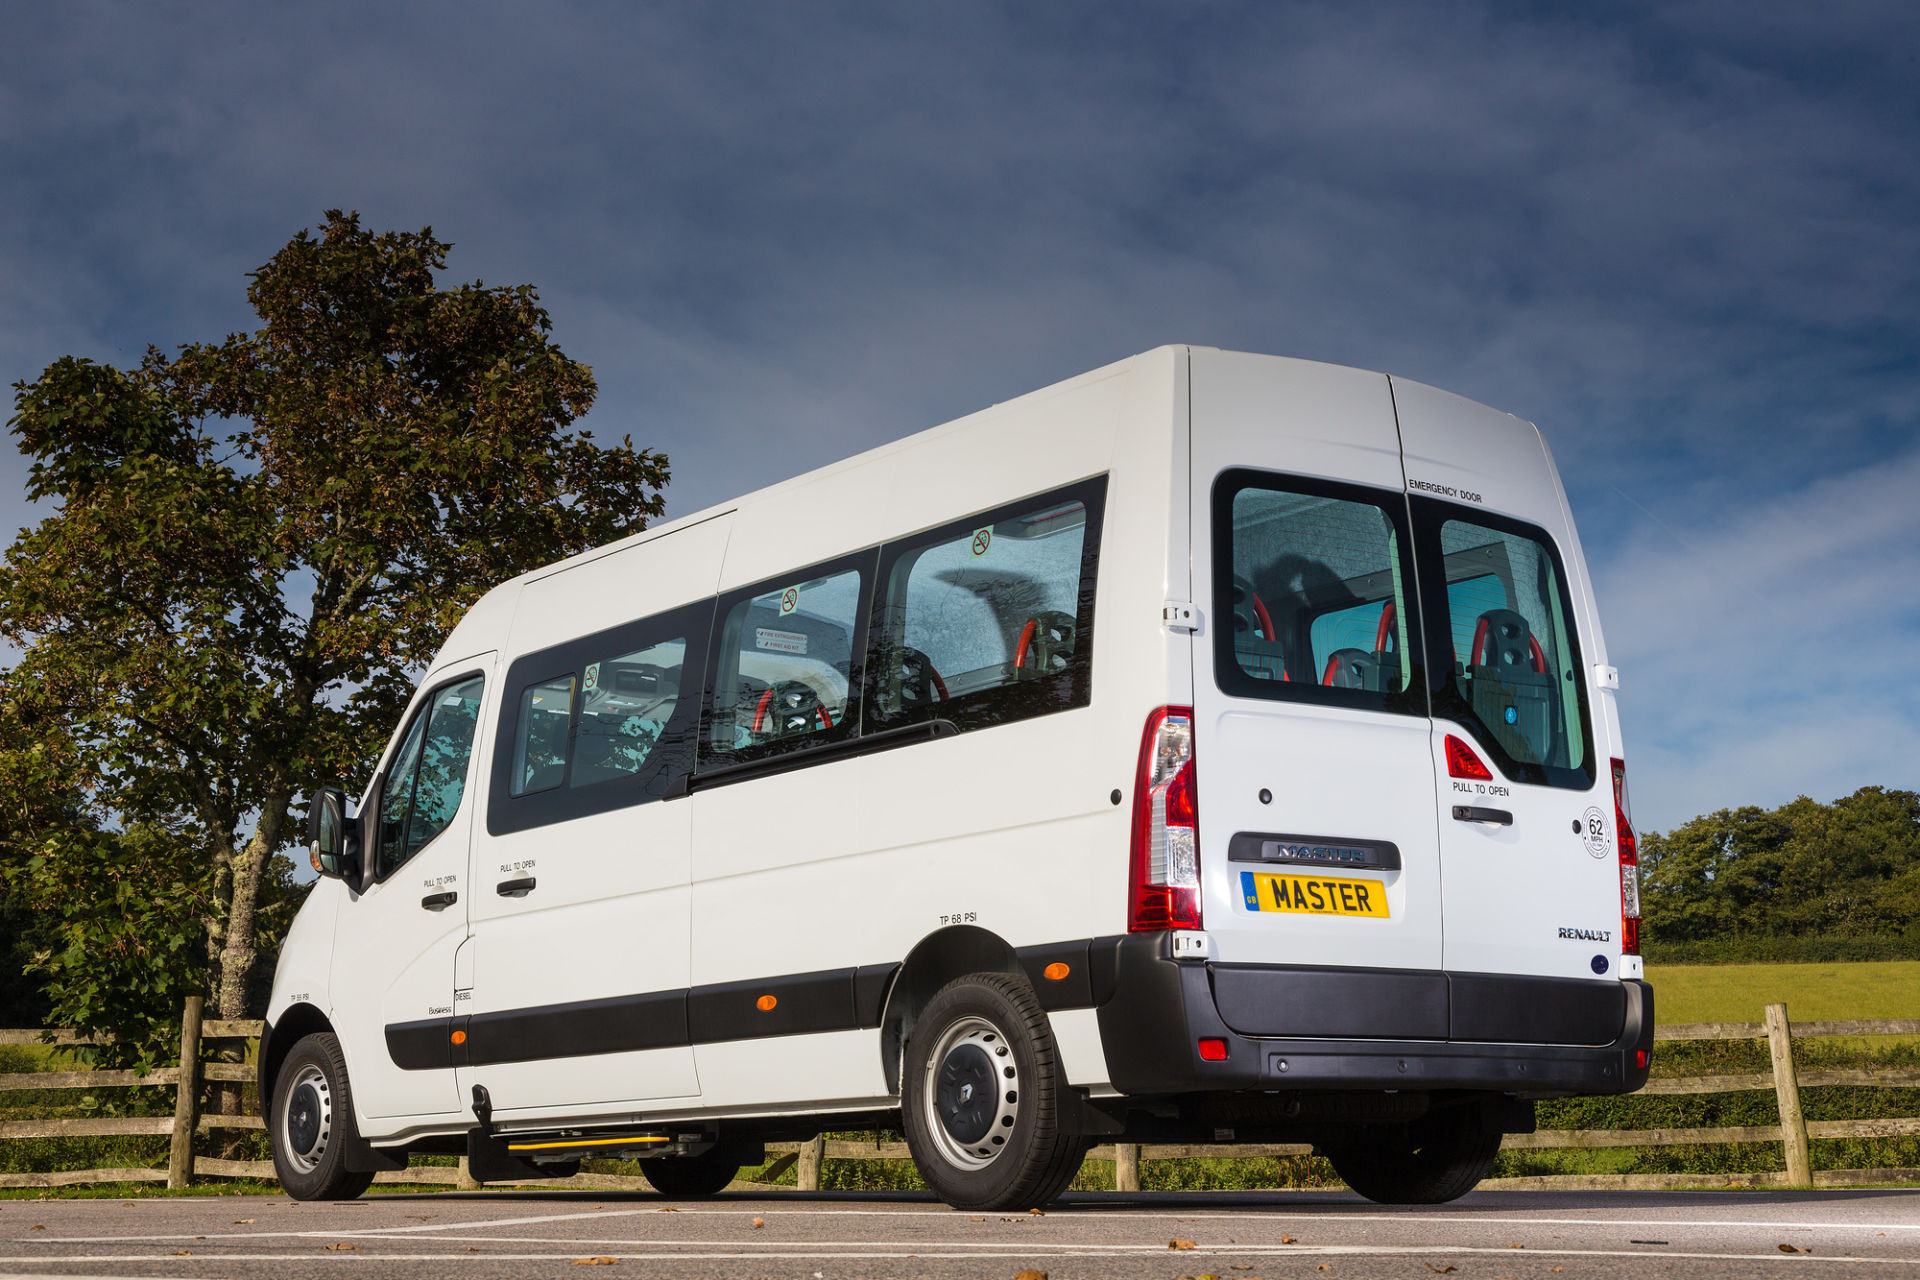 2018 Renault Master 14 Seater Accessible Minibus for Sale - Image 1